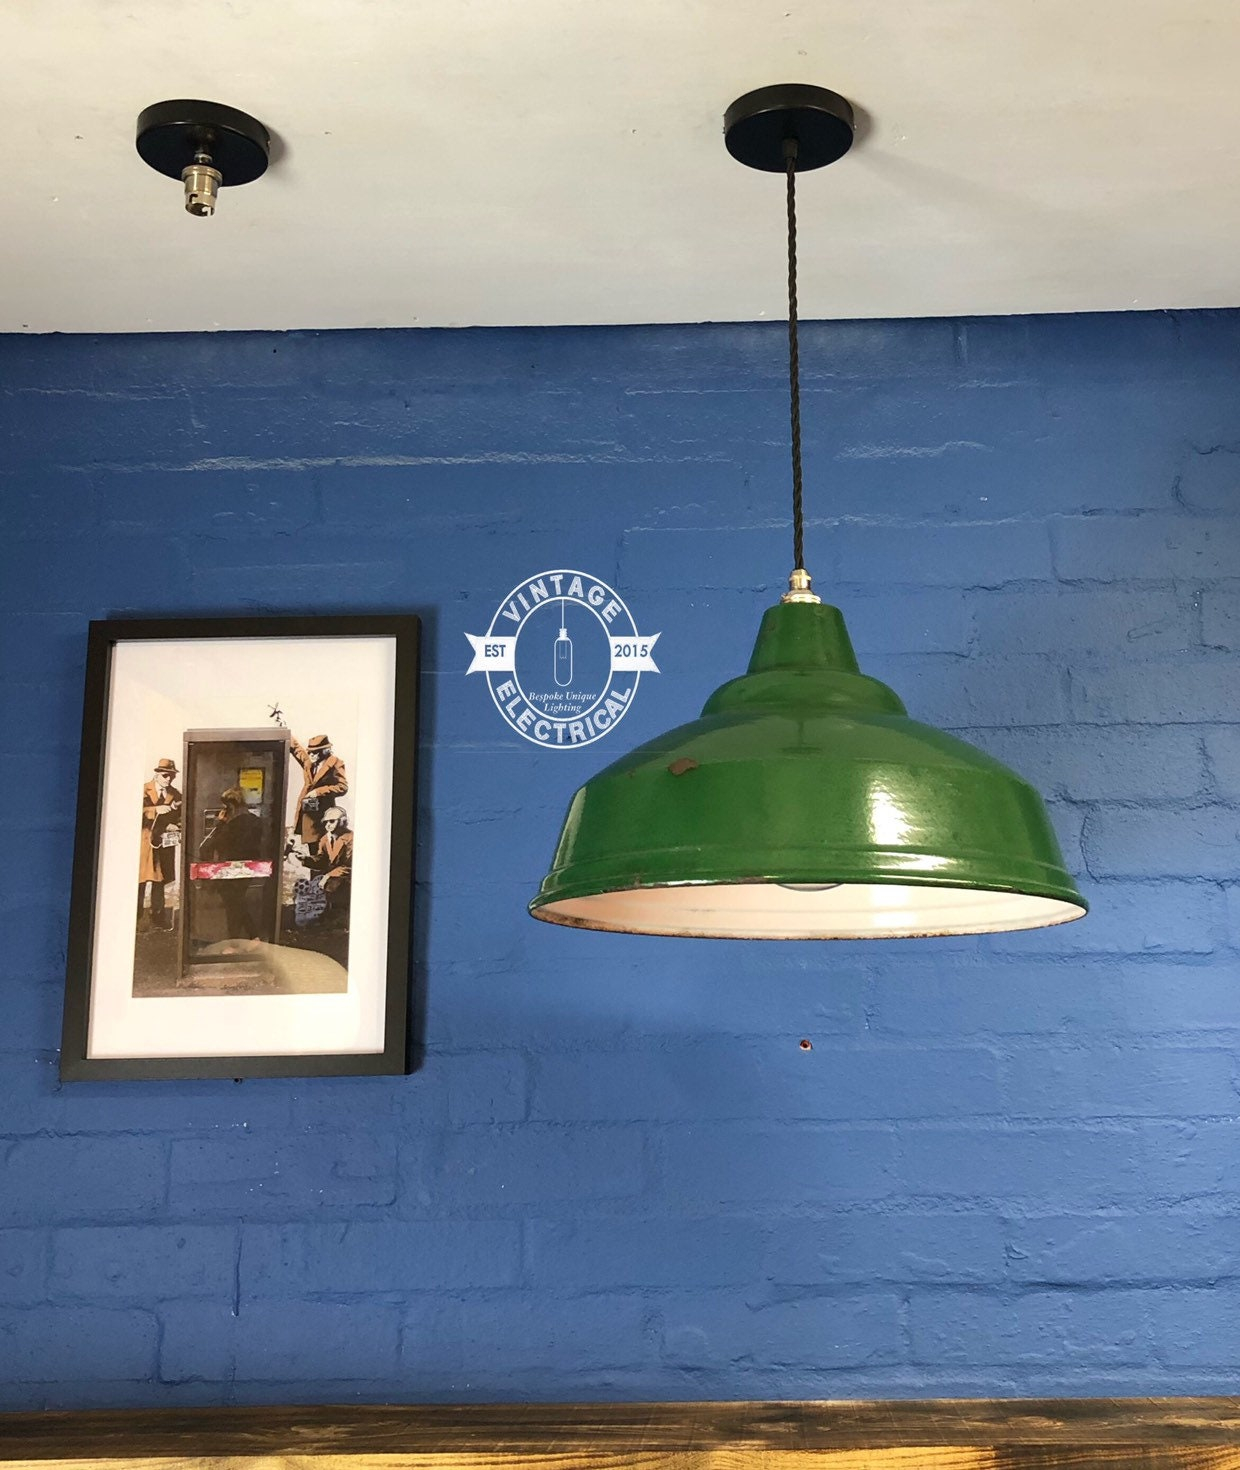 R e a l green 1940s industrial enamel shade vintage light ceiling dinning room kitchen table vintage edison filament lamp included